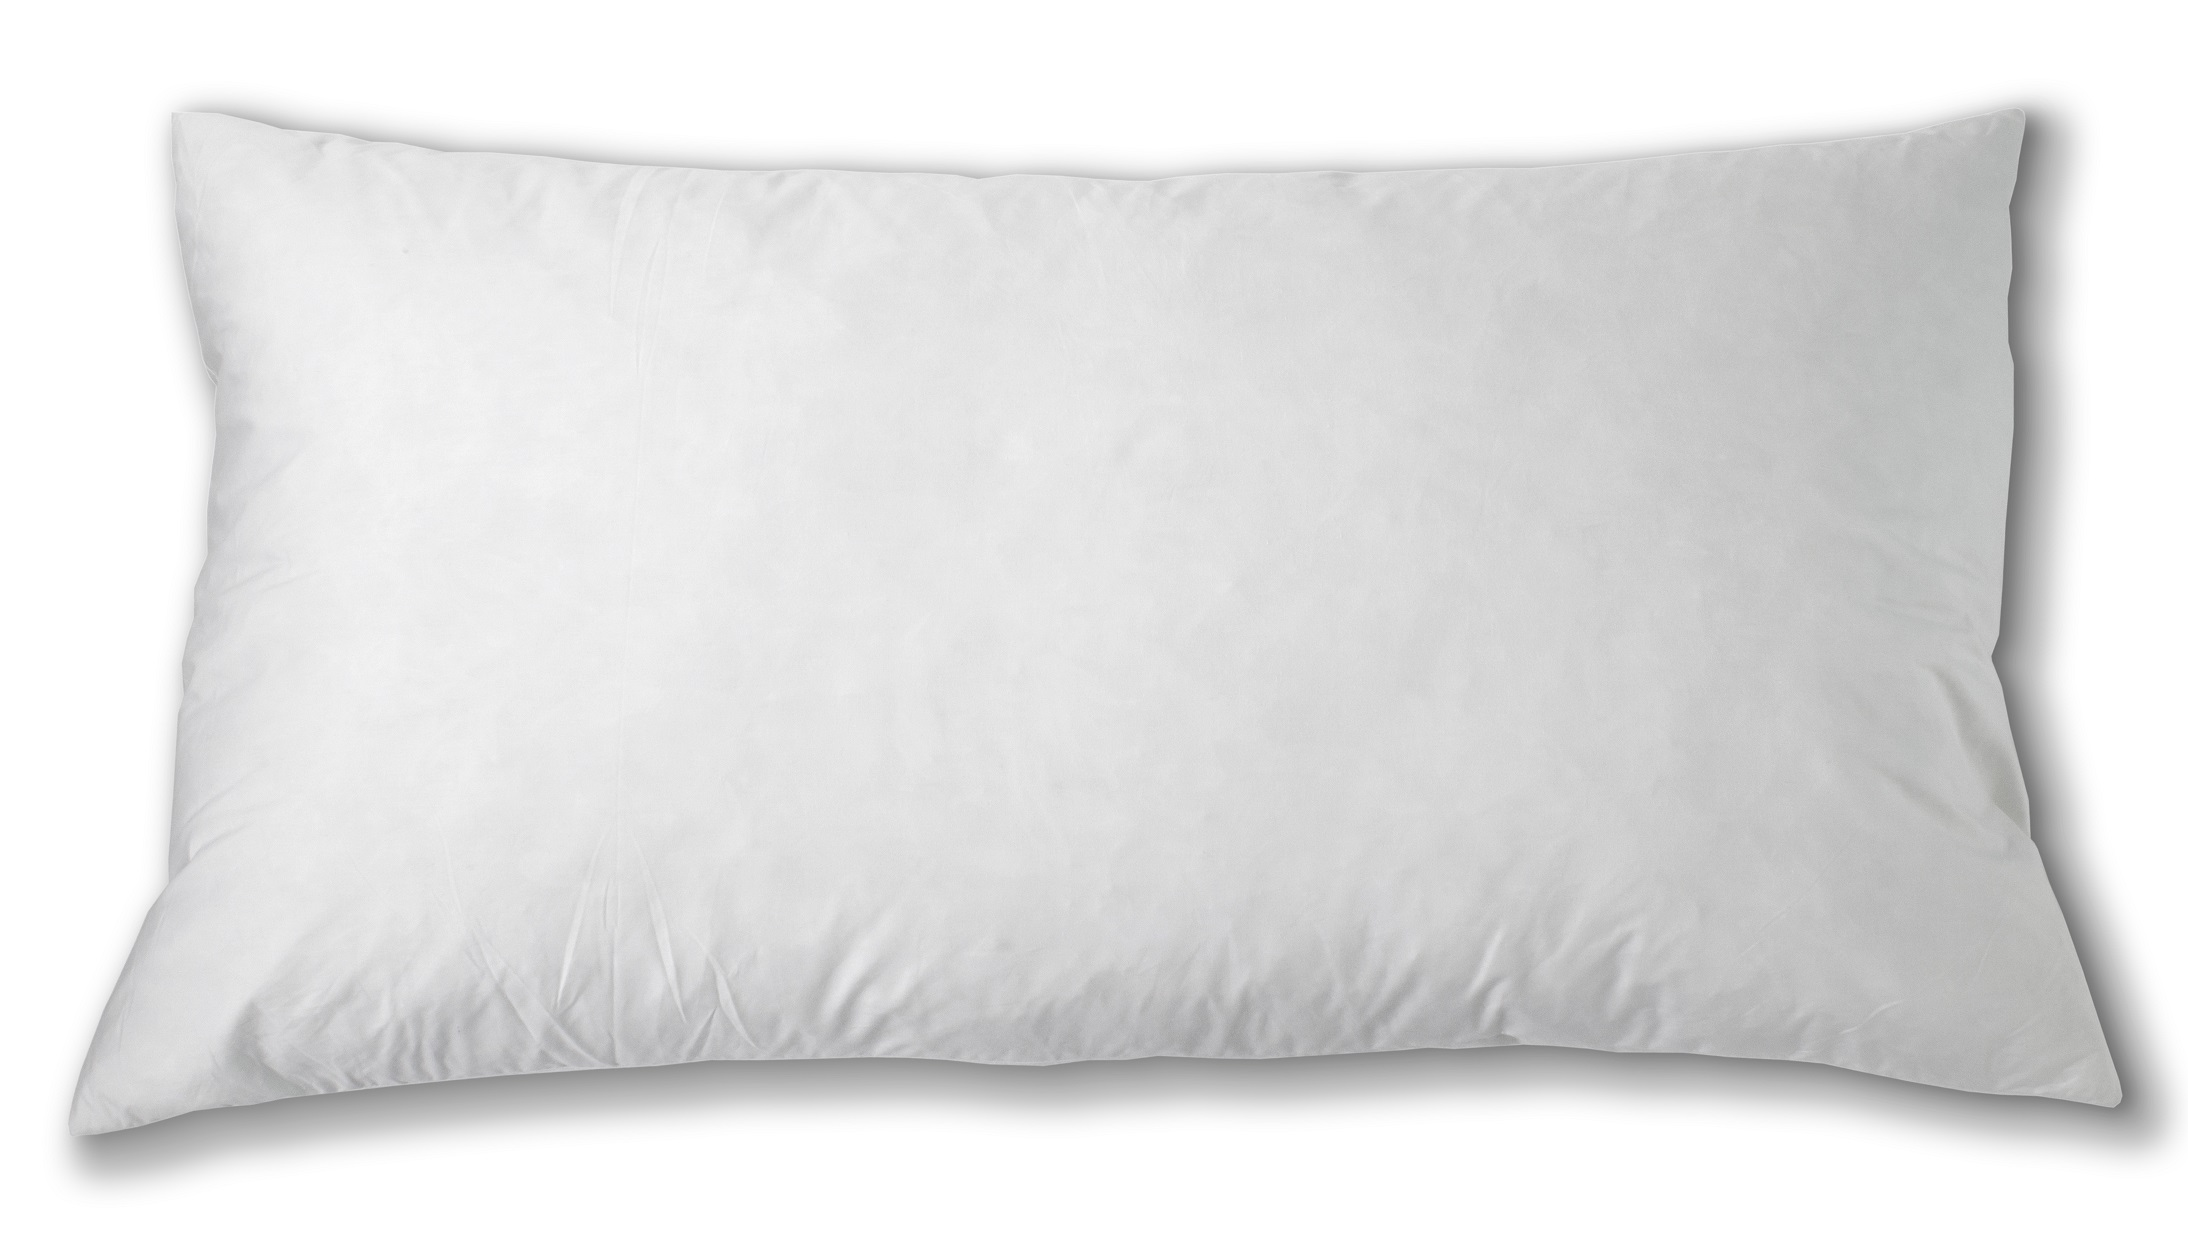 "Alternative Down Synthetic Fiber Pillow 20""x36"""